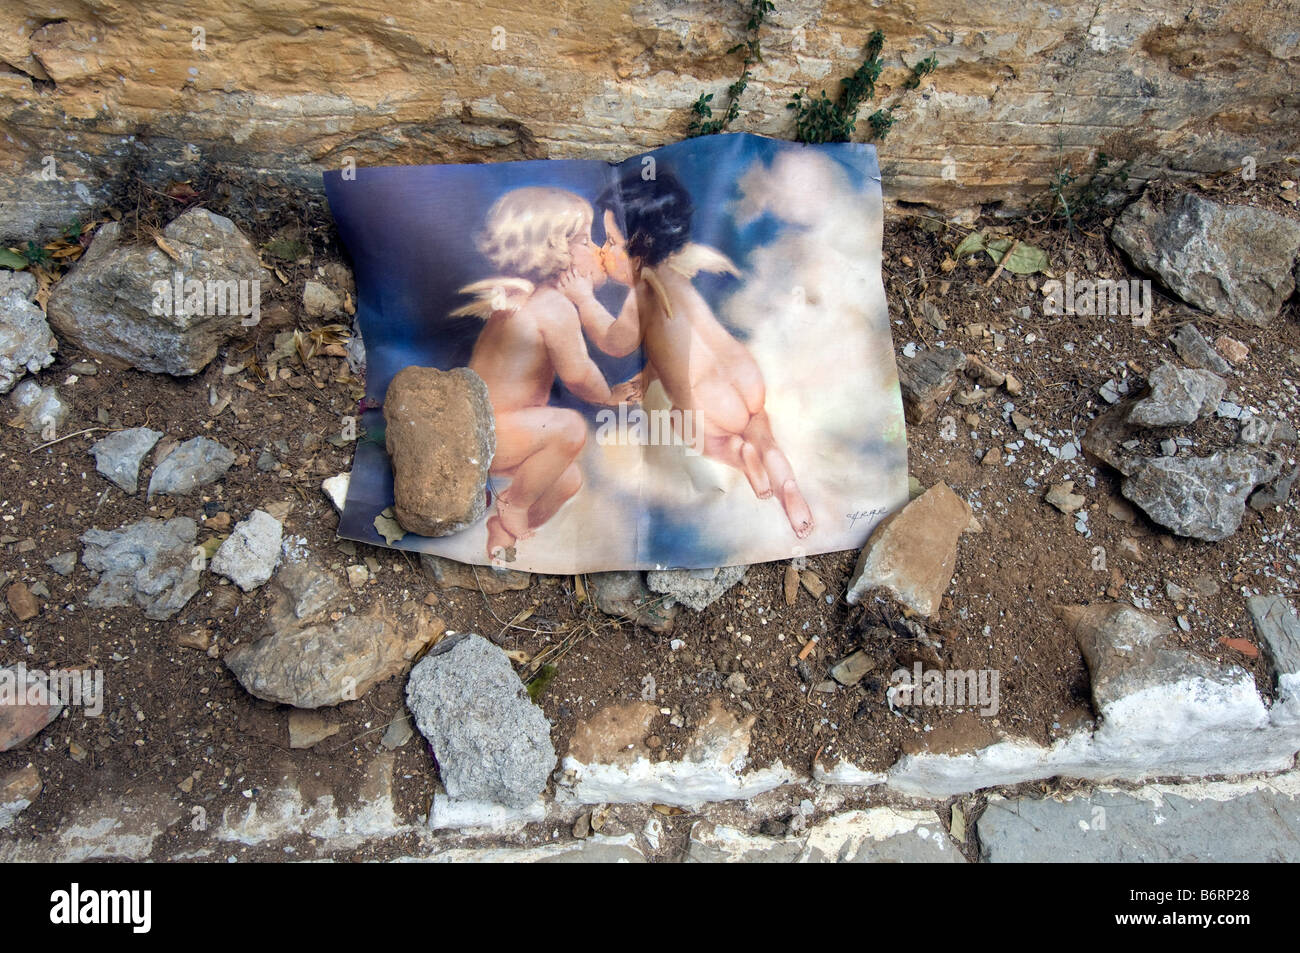 A discarded picture of two cherubs kissing - Stock Image